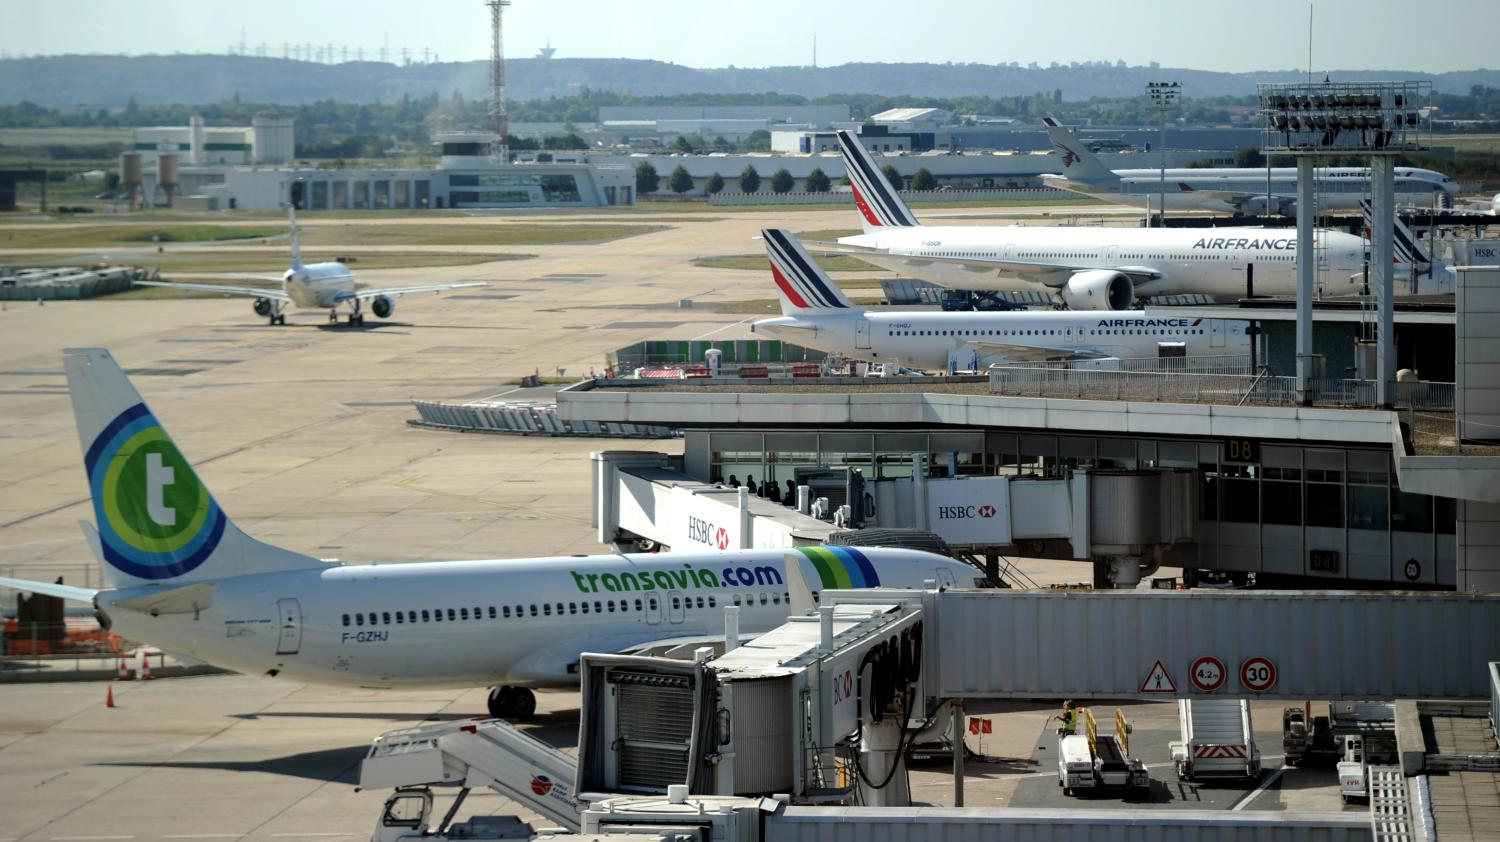 Air France 447 - New theory on what caused plane crash killing 228 Air france wreckage photos